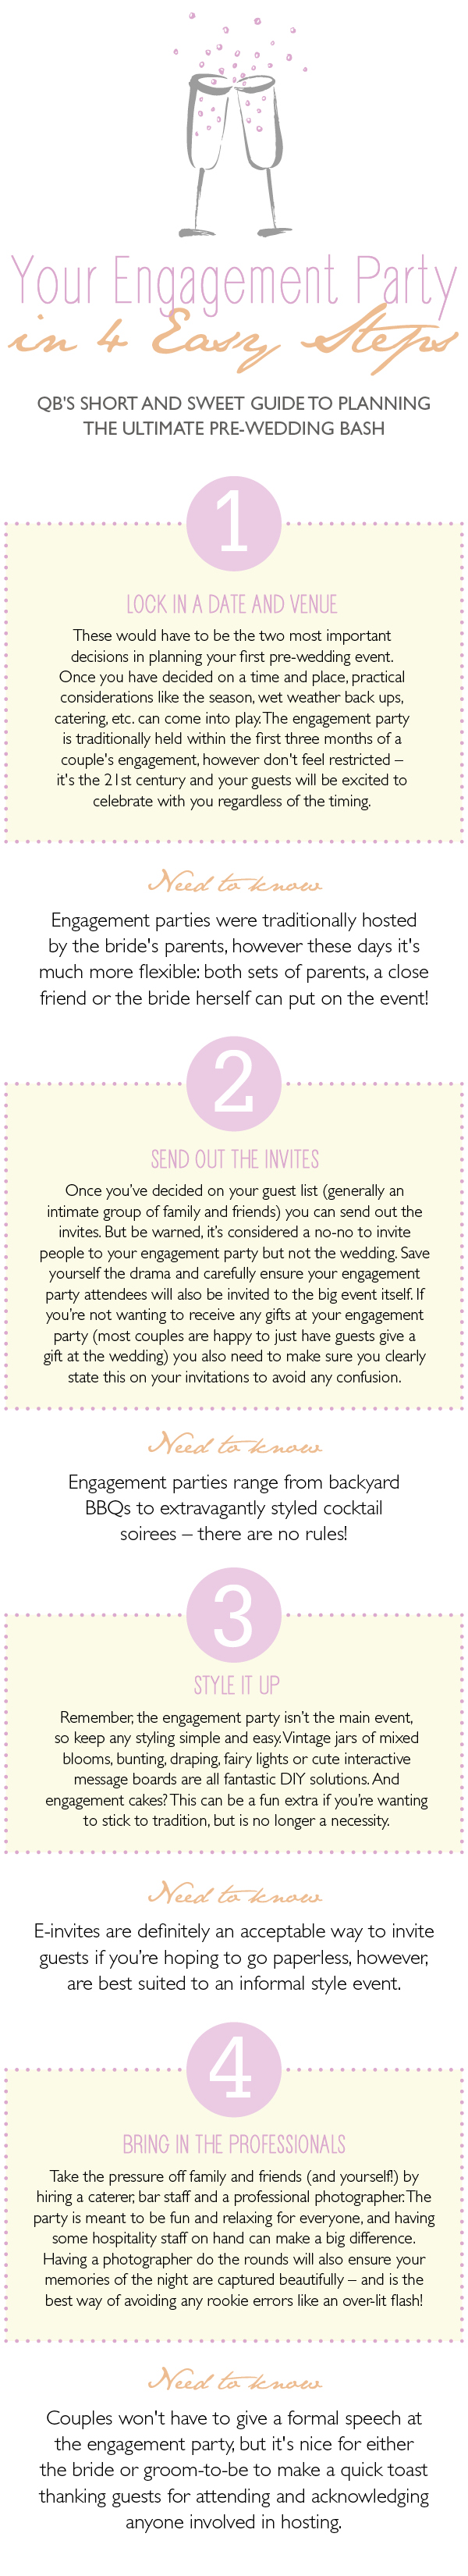 QB Engagement Party infographic